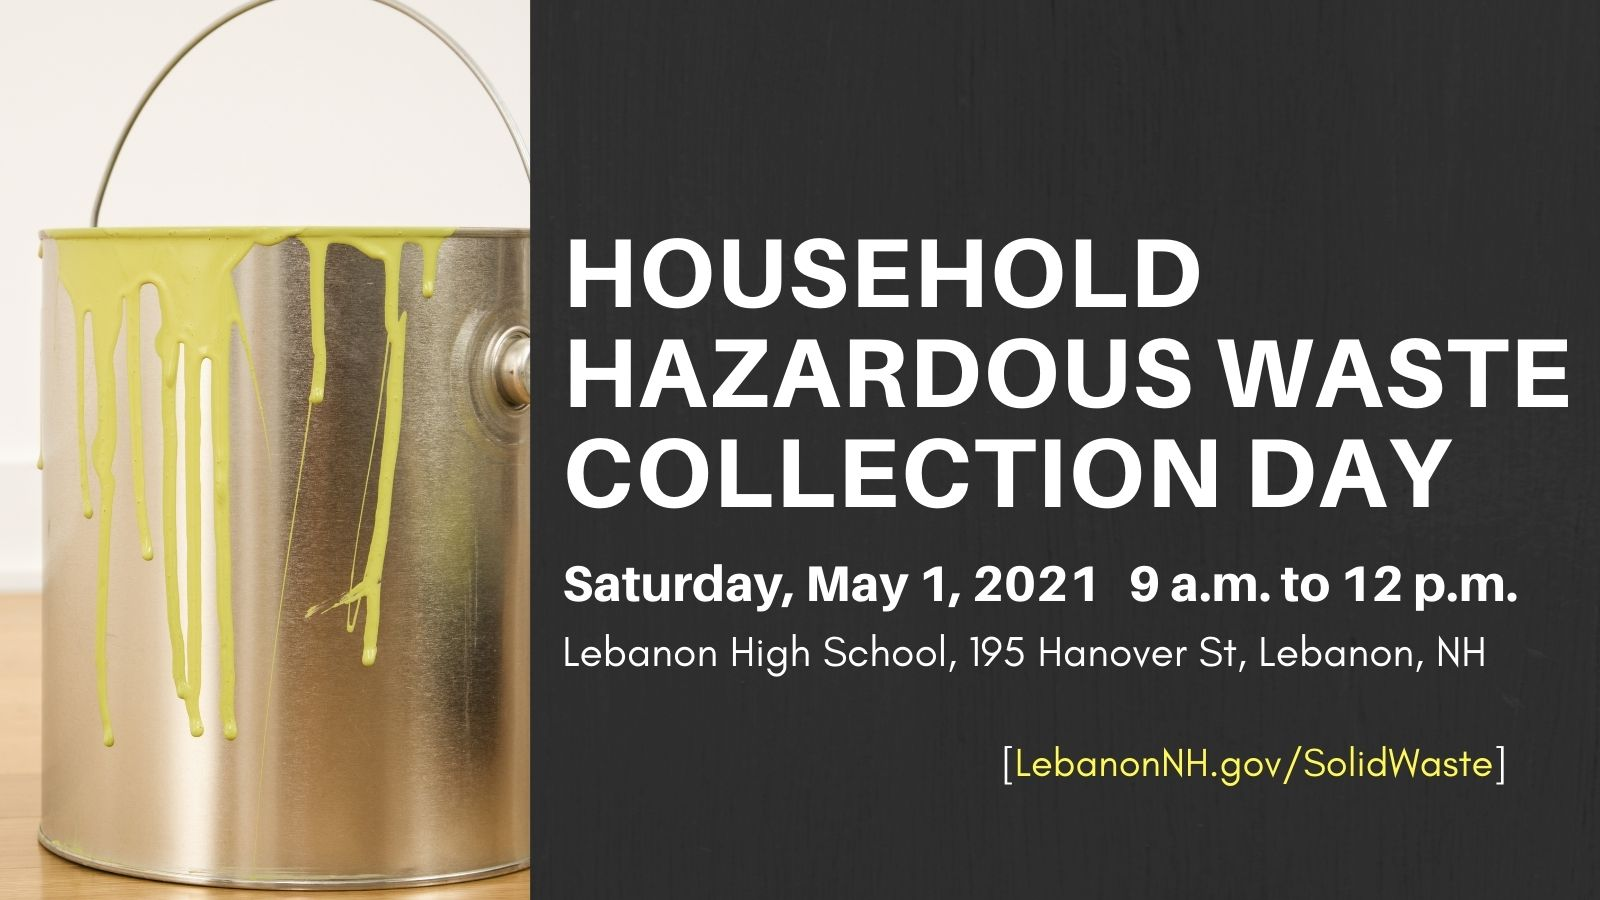 Hazardous Waste Collection Day October 3 from 9am to noon promotional ad